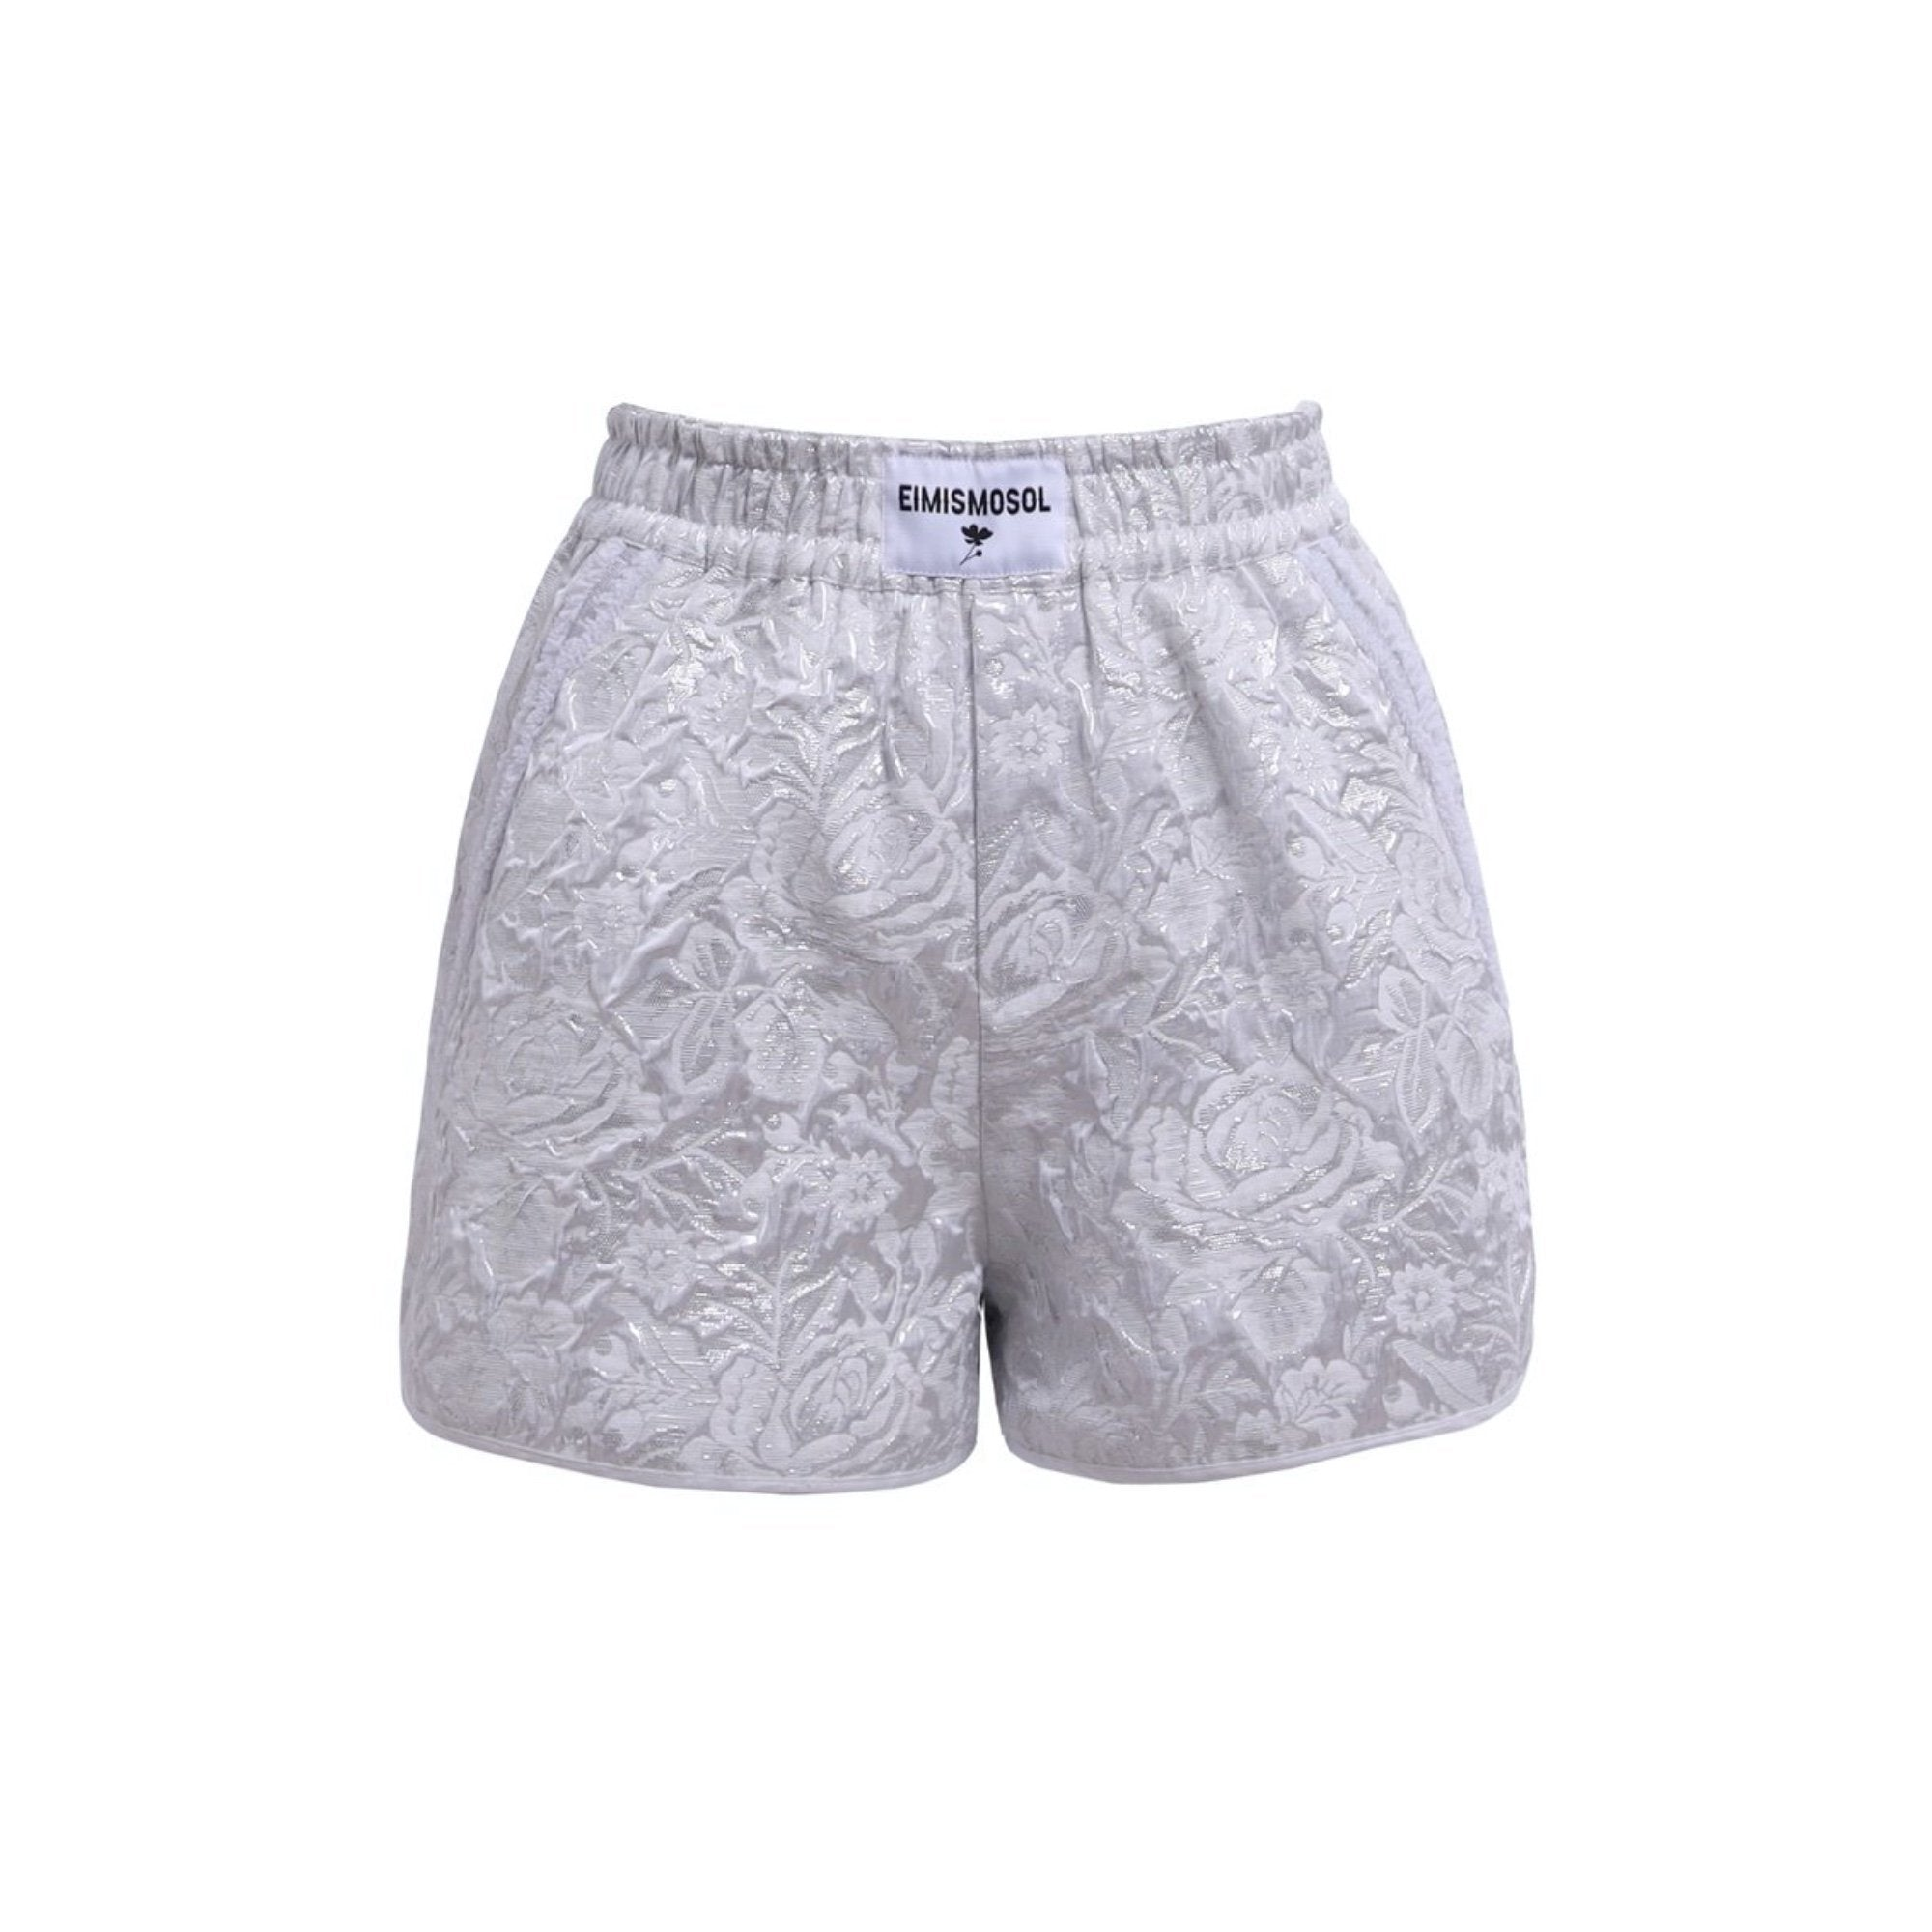 EIMISMOSOL Eimismosol Flower Shorts | MADA IN CHINA